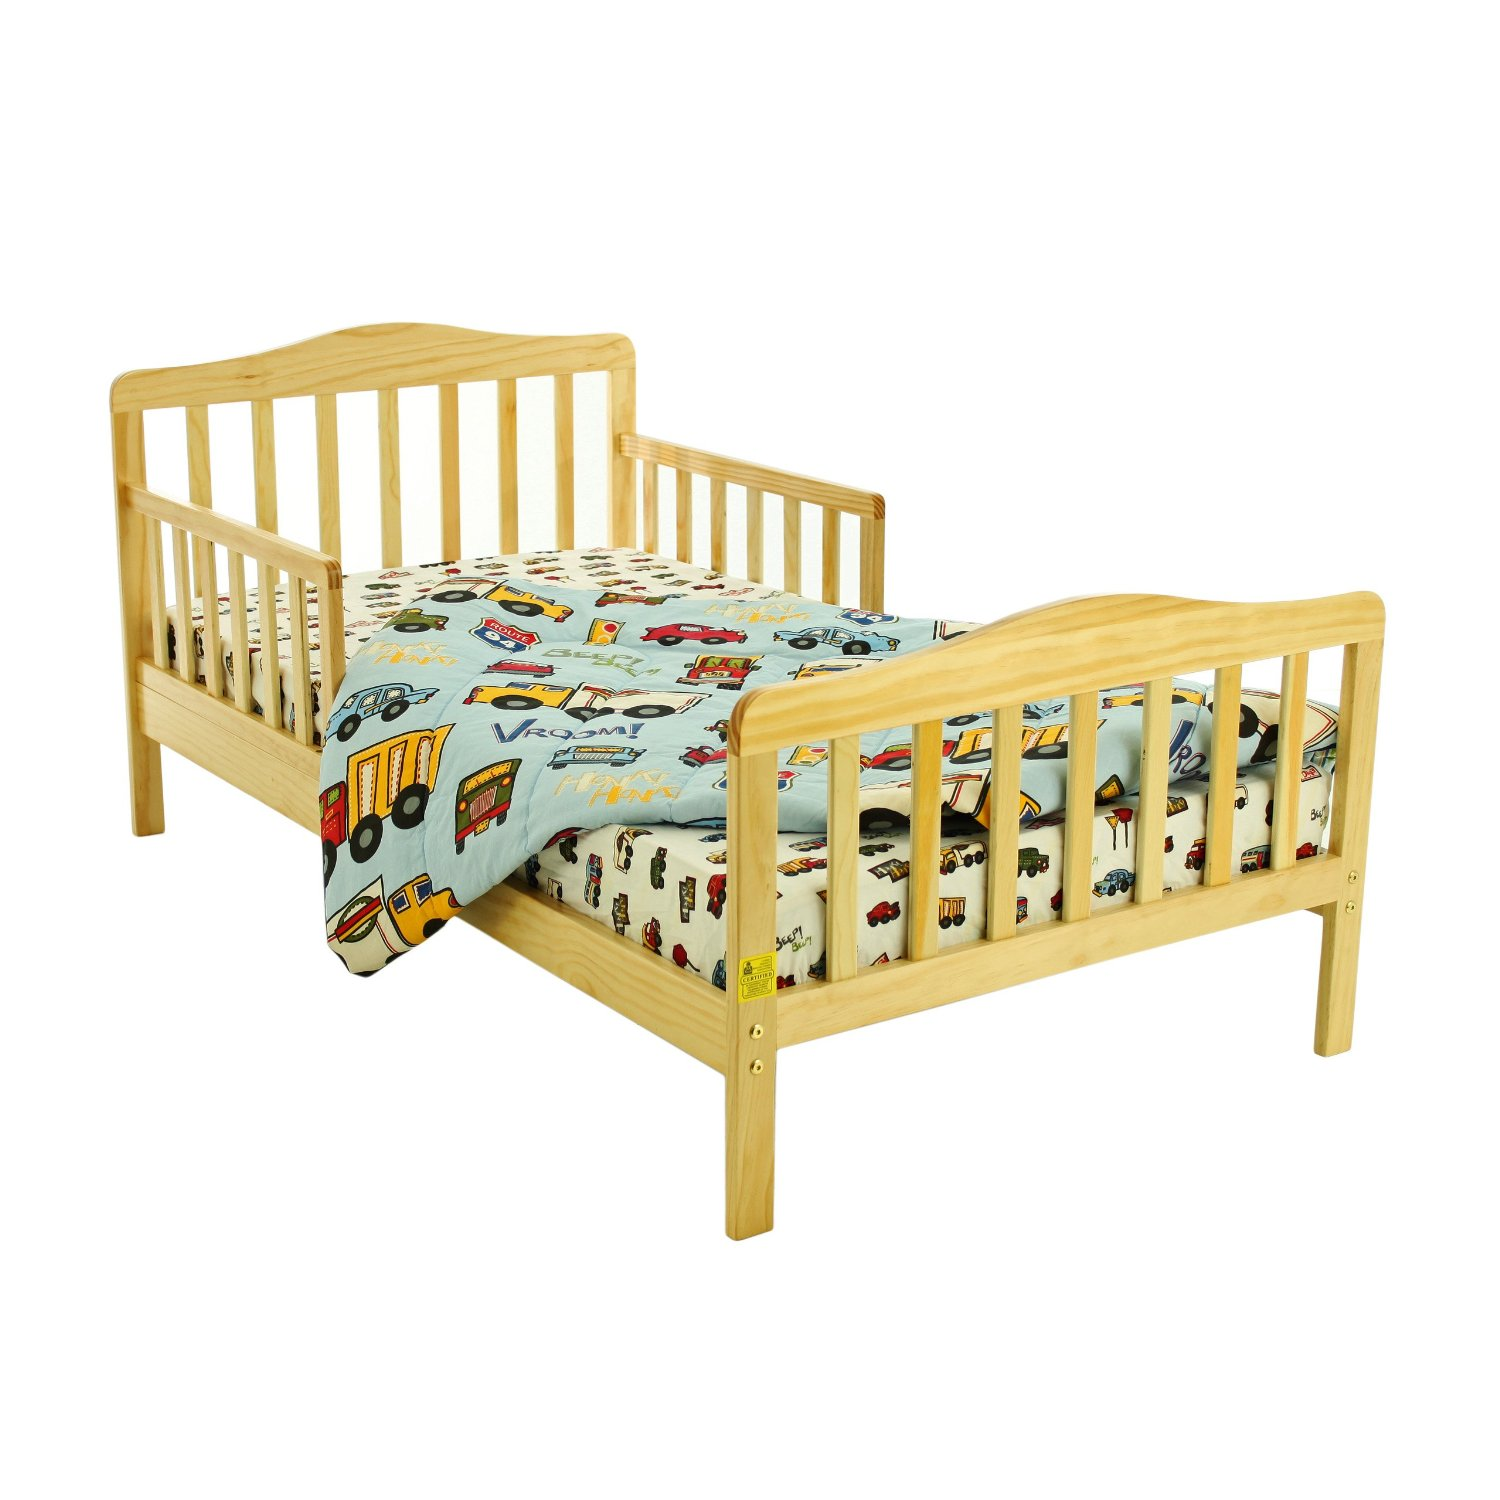 Toddler Bed with Linens